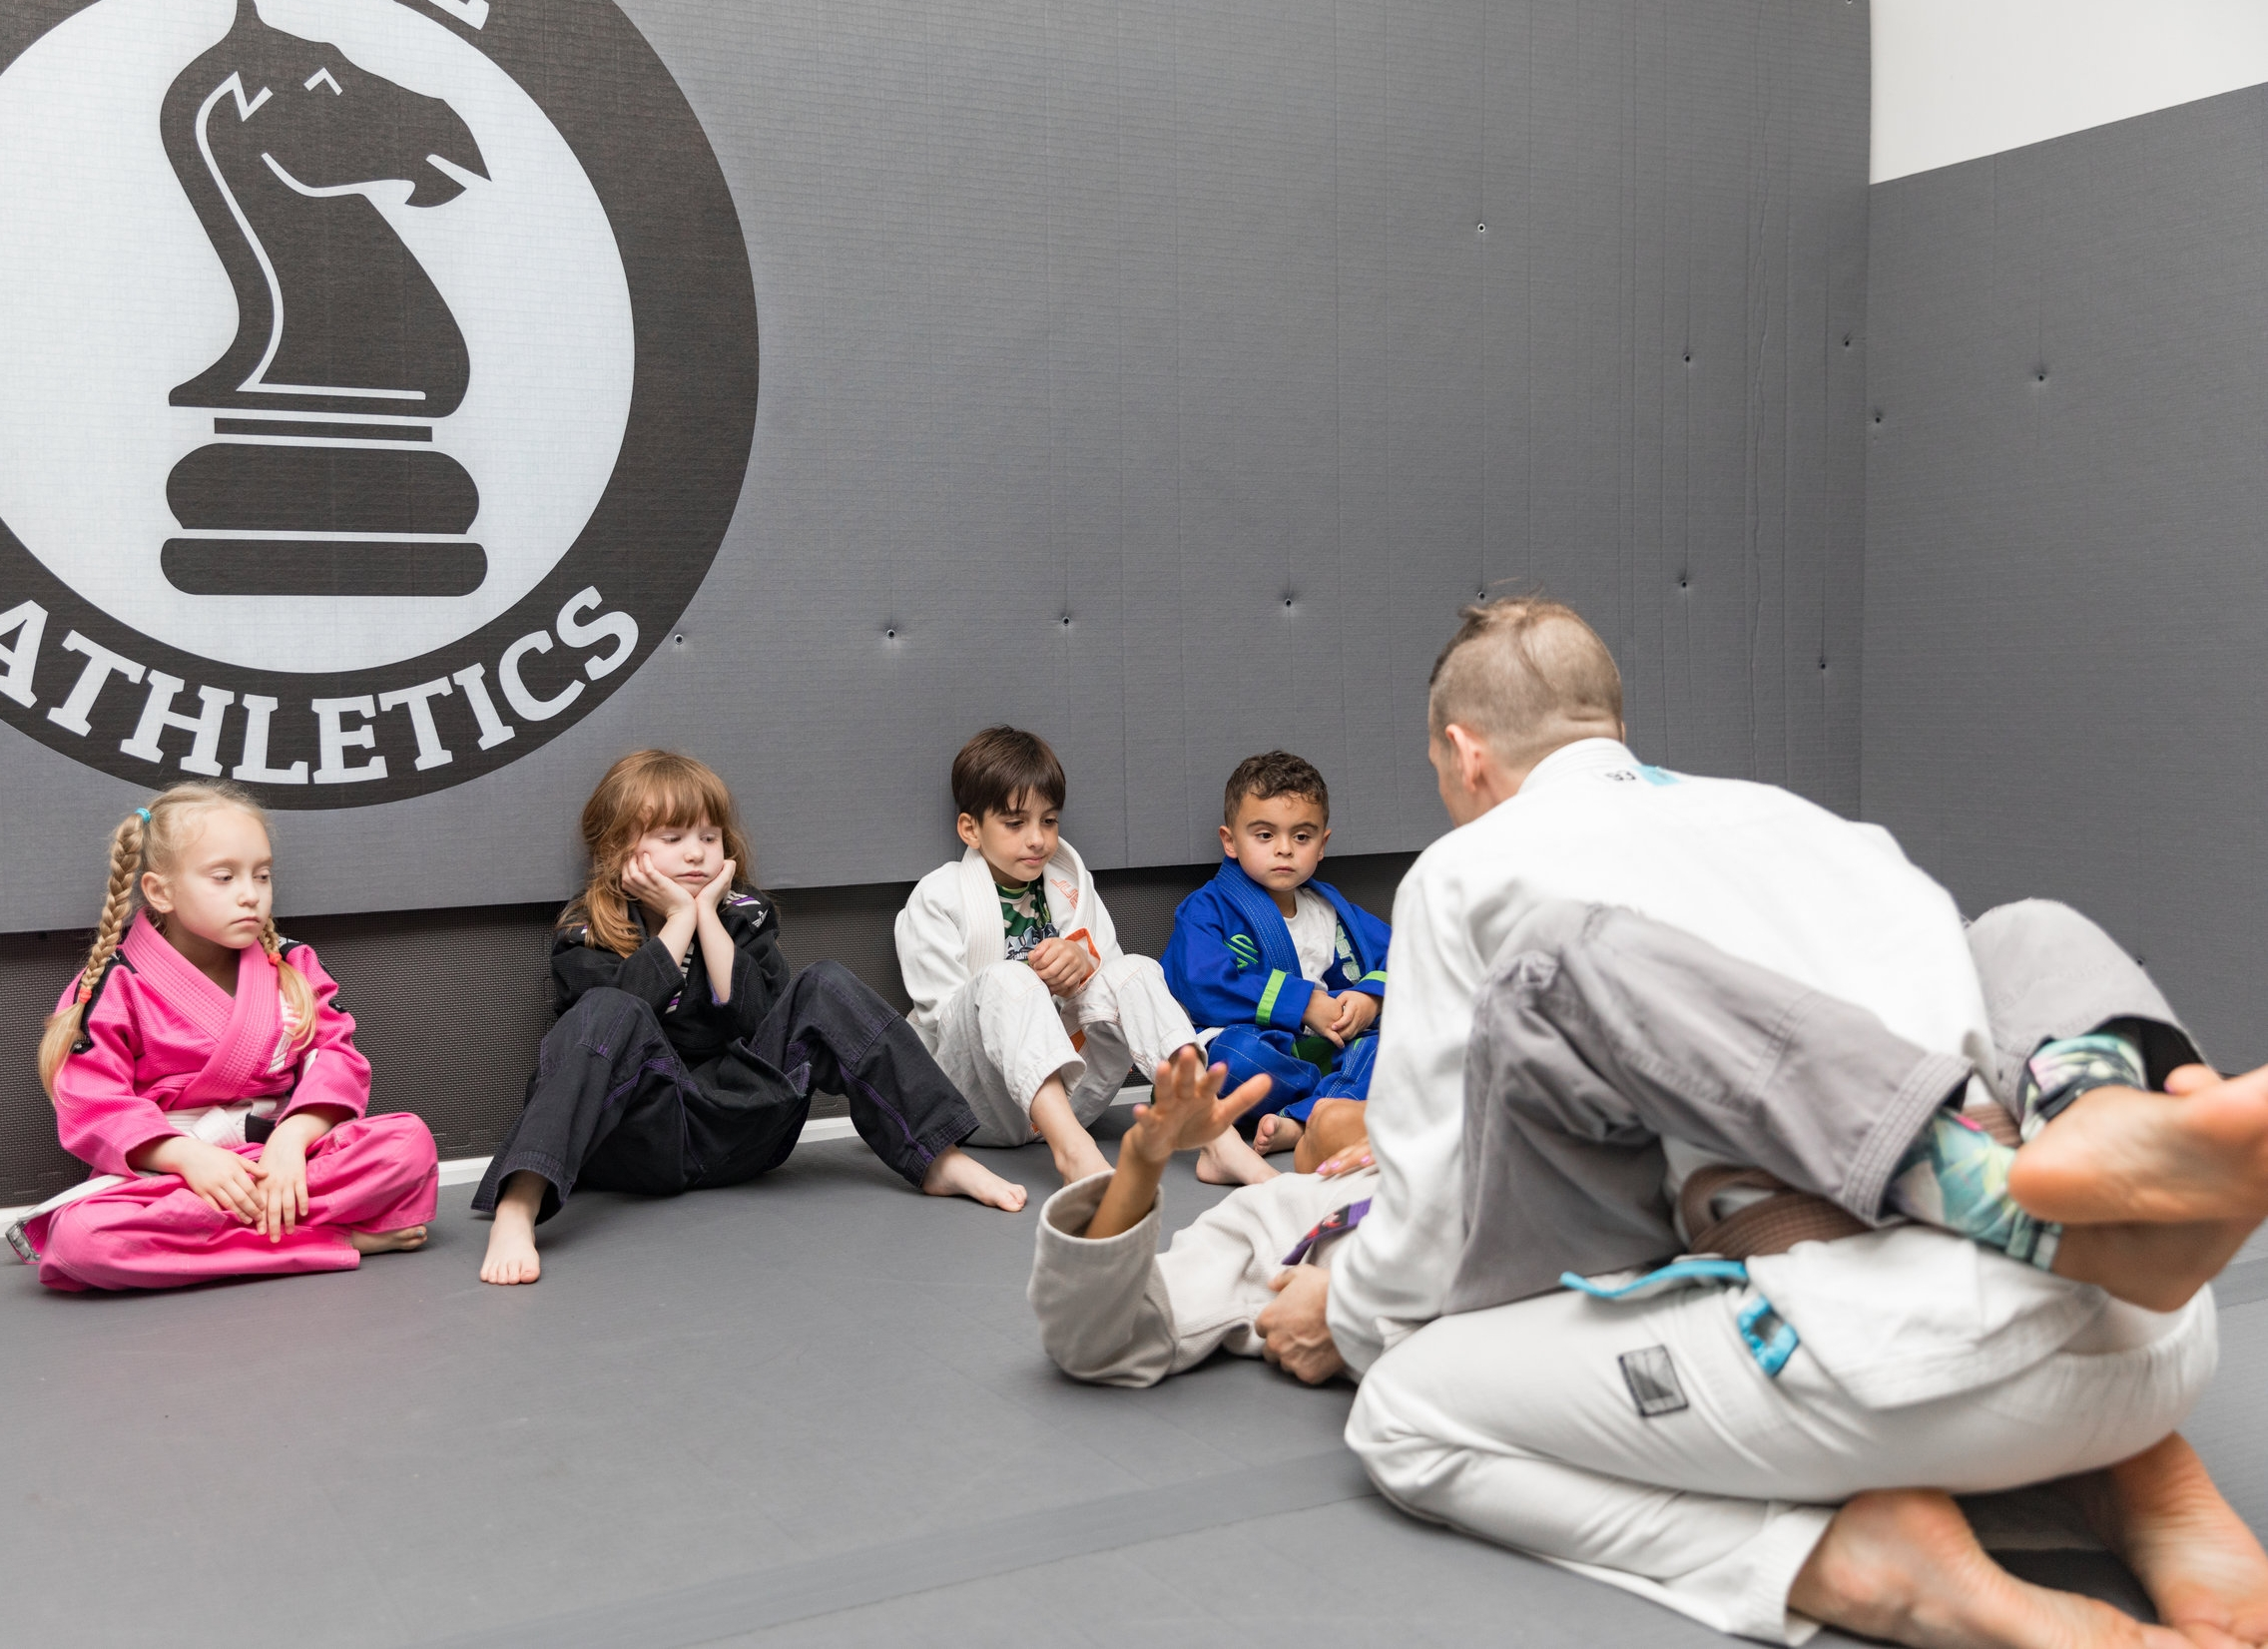 Youth Martial Arts - Our Young Prodigies Martial Arts program is an inclusive martial arts and social skills development program. Recognizing a need for a well rounded Martial Arts program for children that goes beyond the traditional anti-bullying message often advertised by Martial Arts academies, this program combines easily understood and reinforced skills that will help your child become a more focused, more attentive, and more conscientious member of your family.Our program provides a well-rounded, holistic experience for all participants. We have combined our respective areas of expertise with outside consultants in order to create a program that builds disciplined fighters, focused scholars, and more productive individuals. The Young Prodigies curriculum was developed with insight from Special Education teachers, YMCA Camp Counselors, and Program Directors, with the intention of launching a truly unique physical and mental education experience for your child.